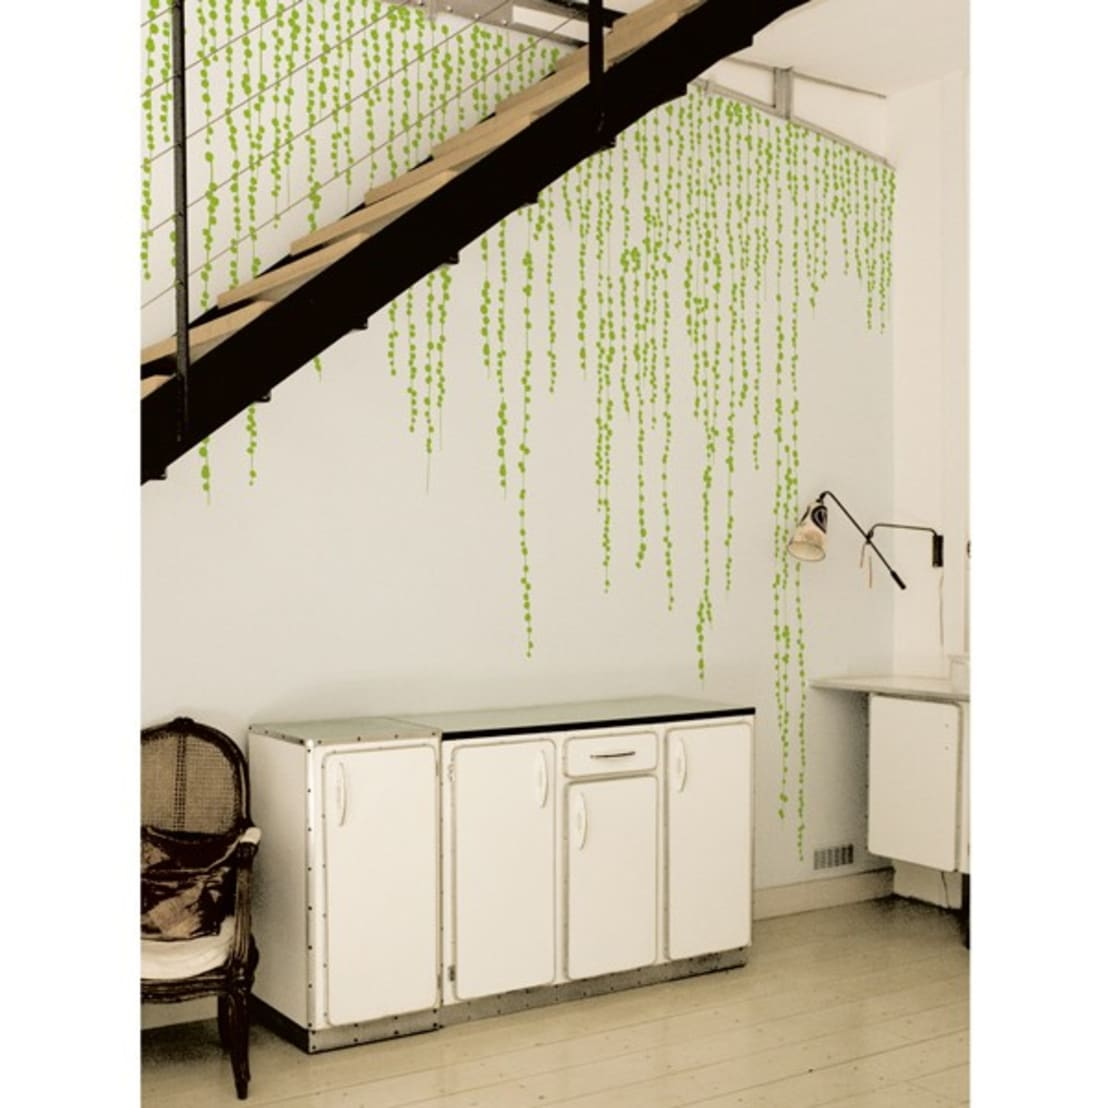 wallstickers jungle peas de ich et kar homify. Black Bedroom Furniture Sets. Home Design Ideas